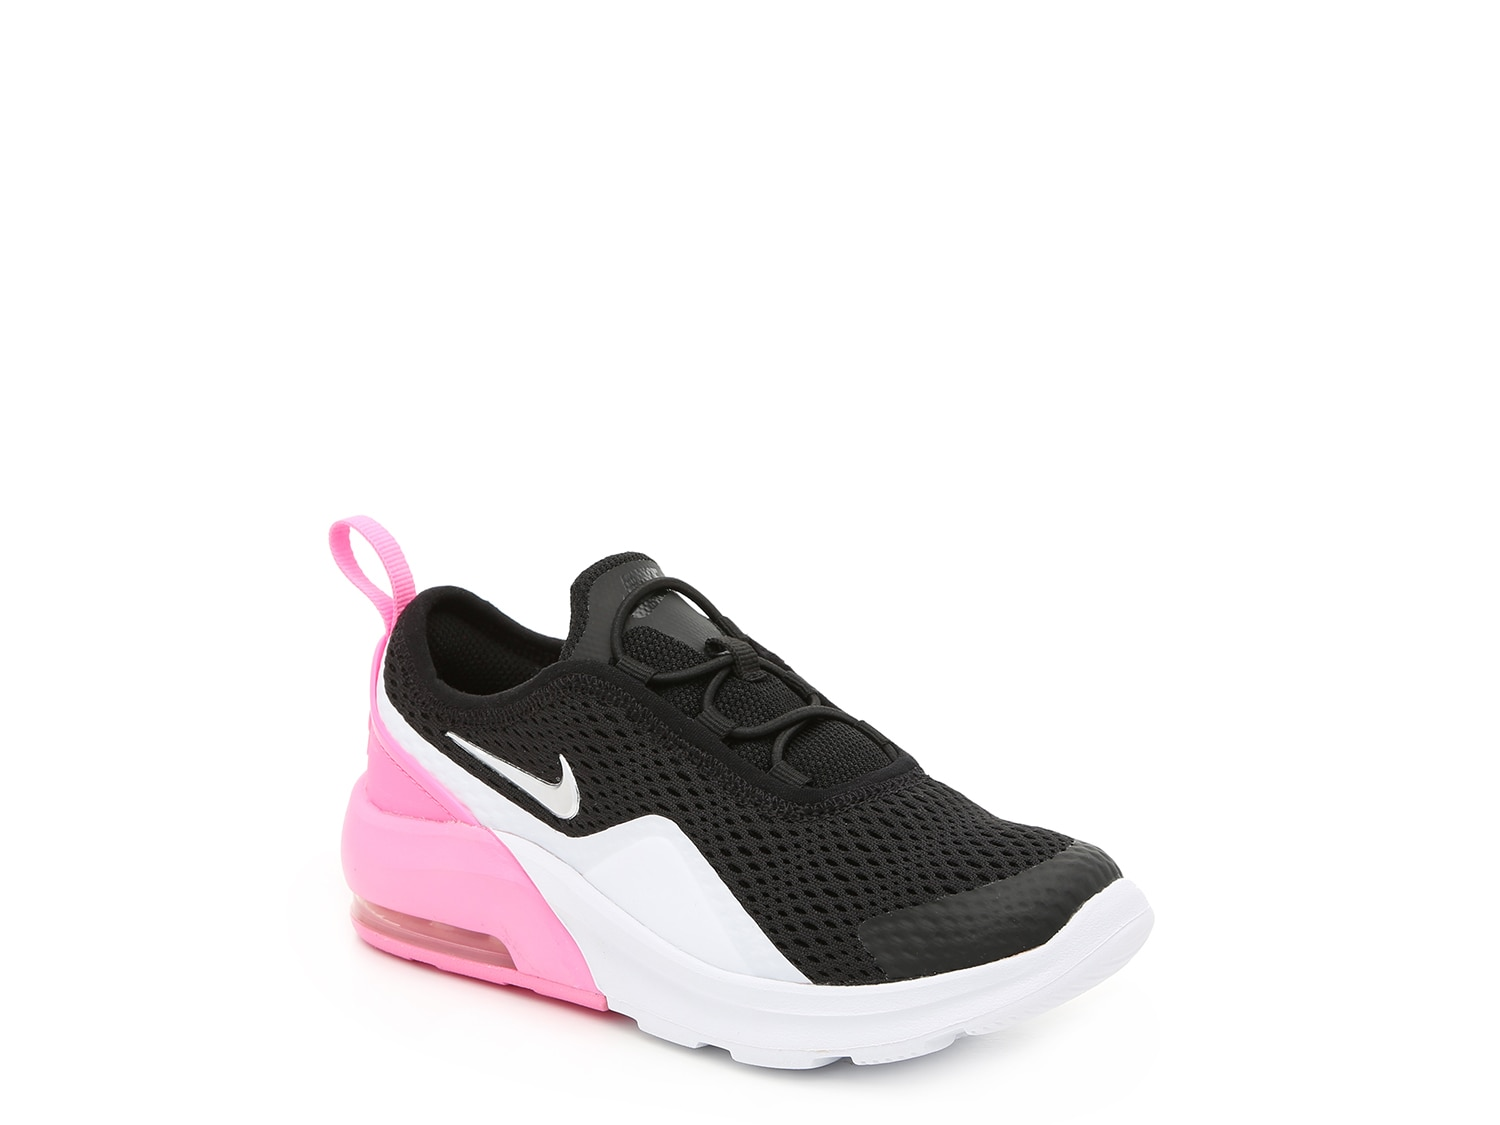 Nike Shoes Sneakers Tennis Shoes Running Shoes Dsw